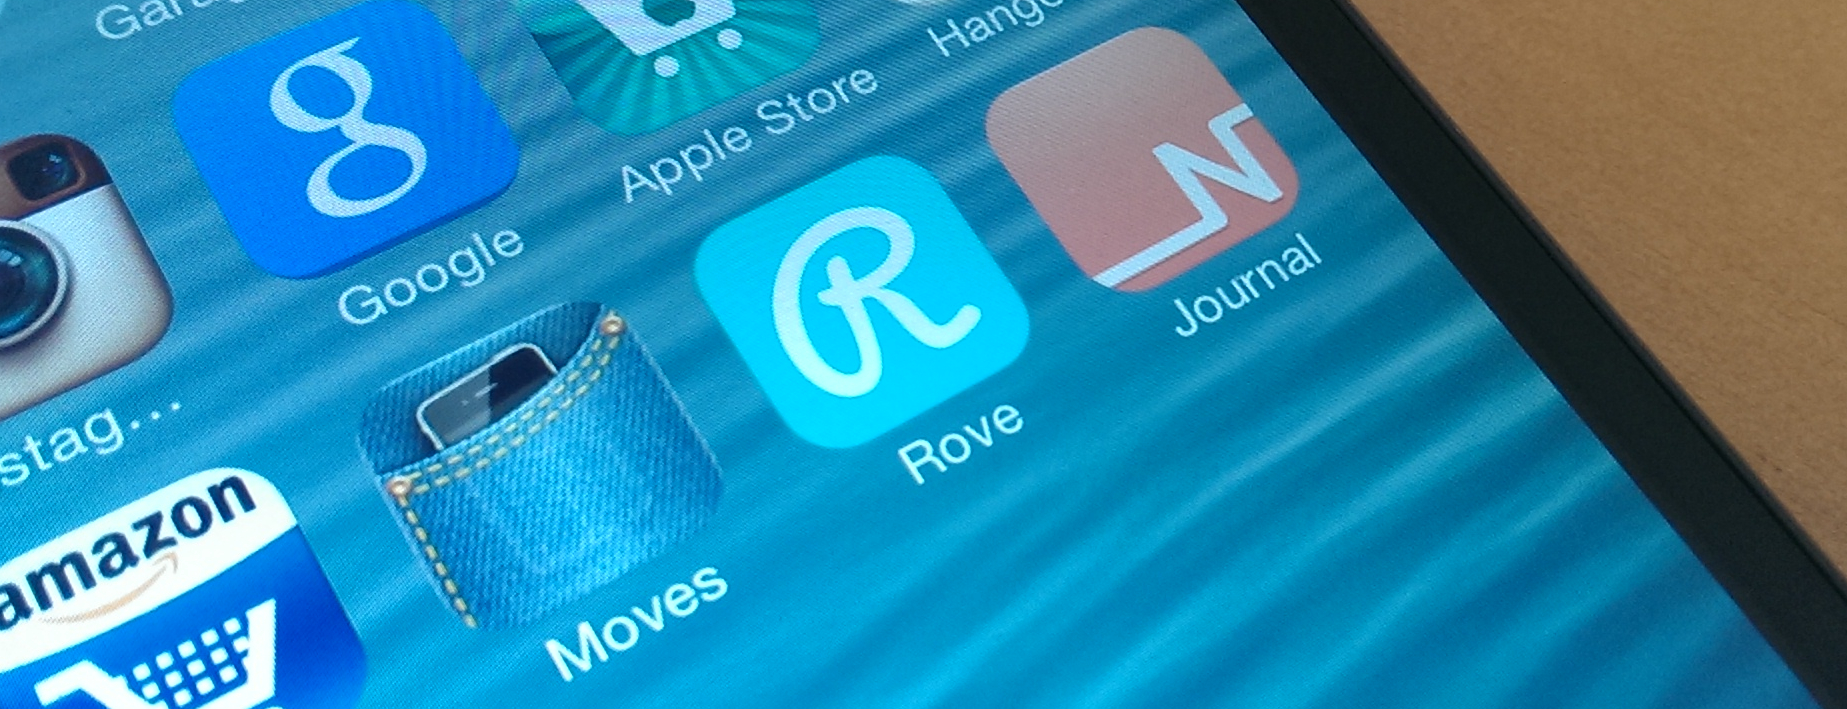 Stylish Location Diary App Rove Now Lets you Share your Trips